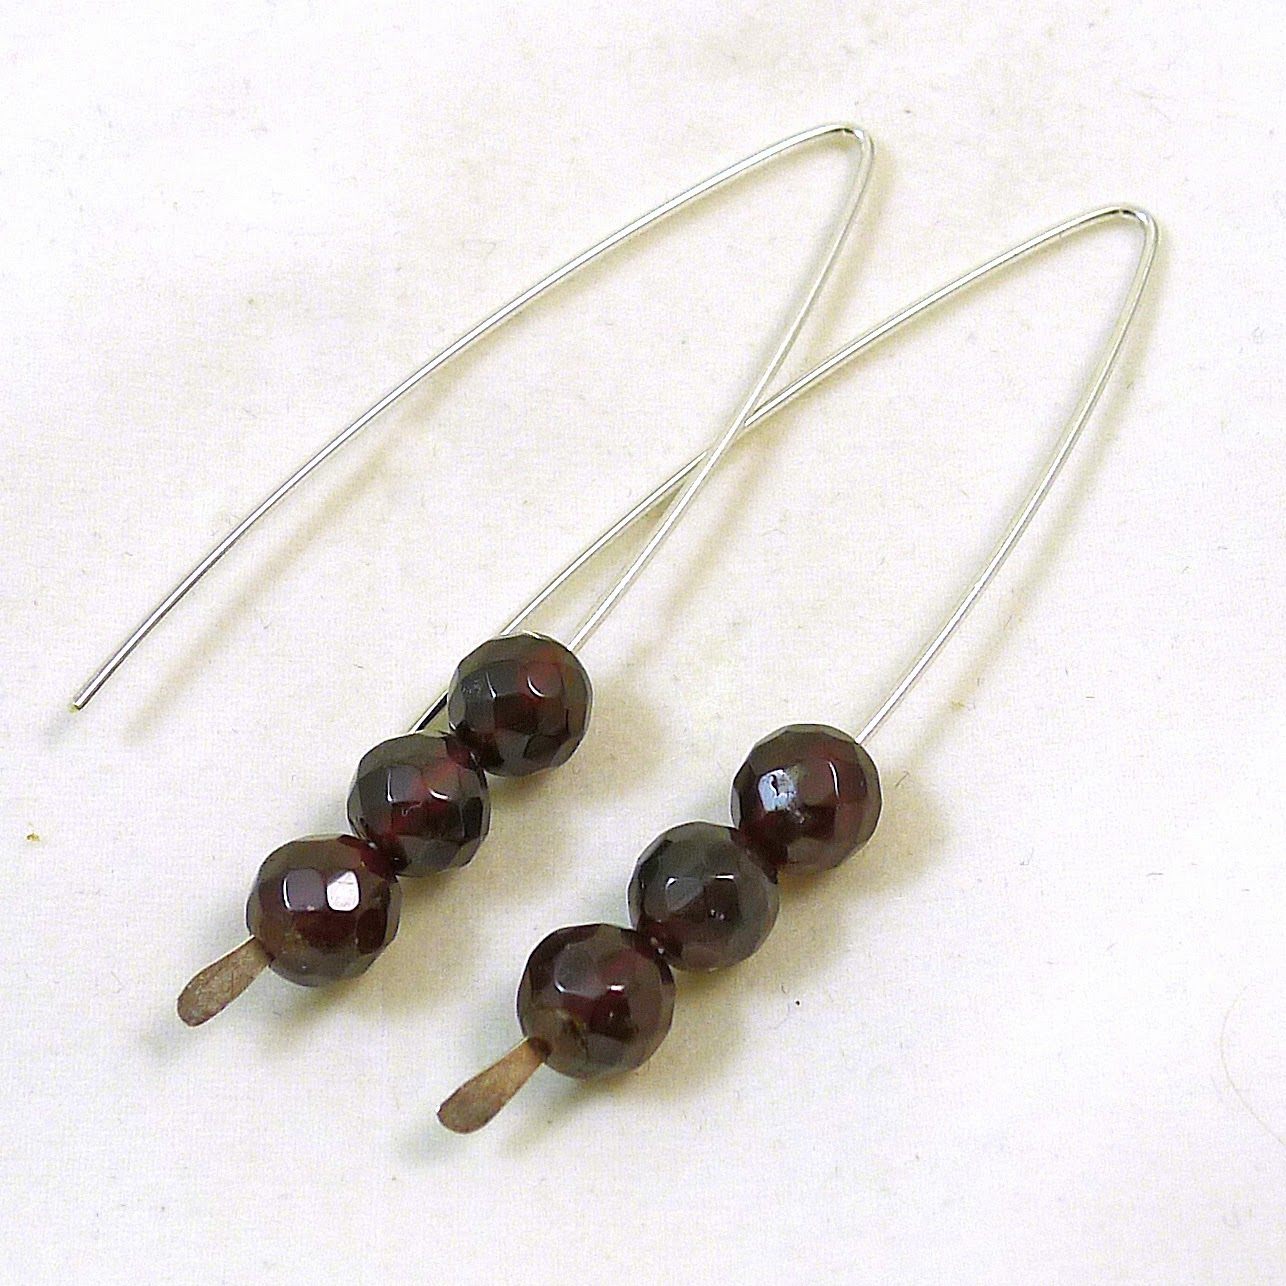 https://www.etsy.com/nz/listing/177091880/garnet-v-style-earrings?ref=shop_home_active_9